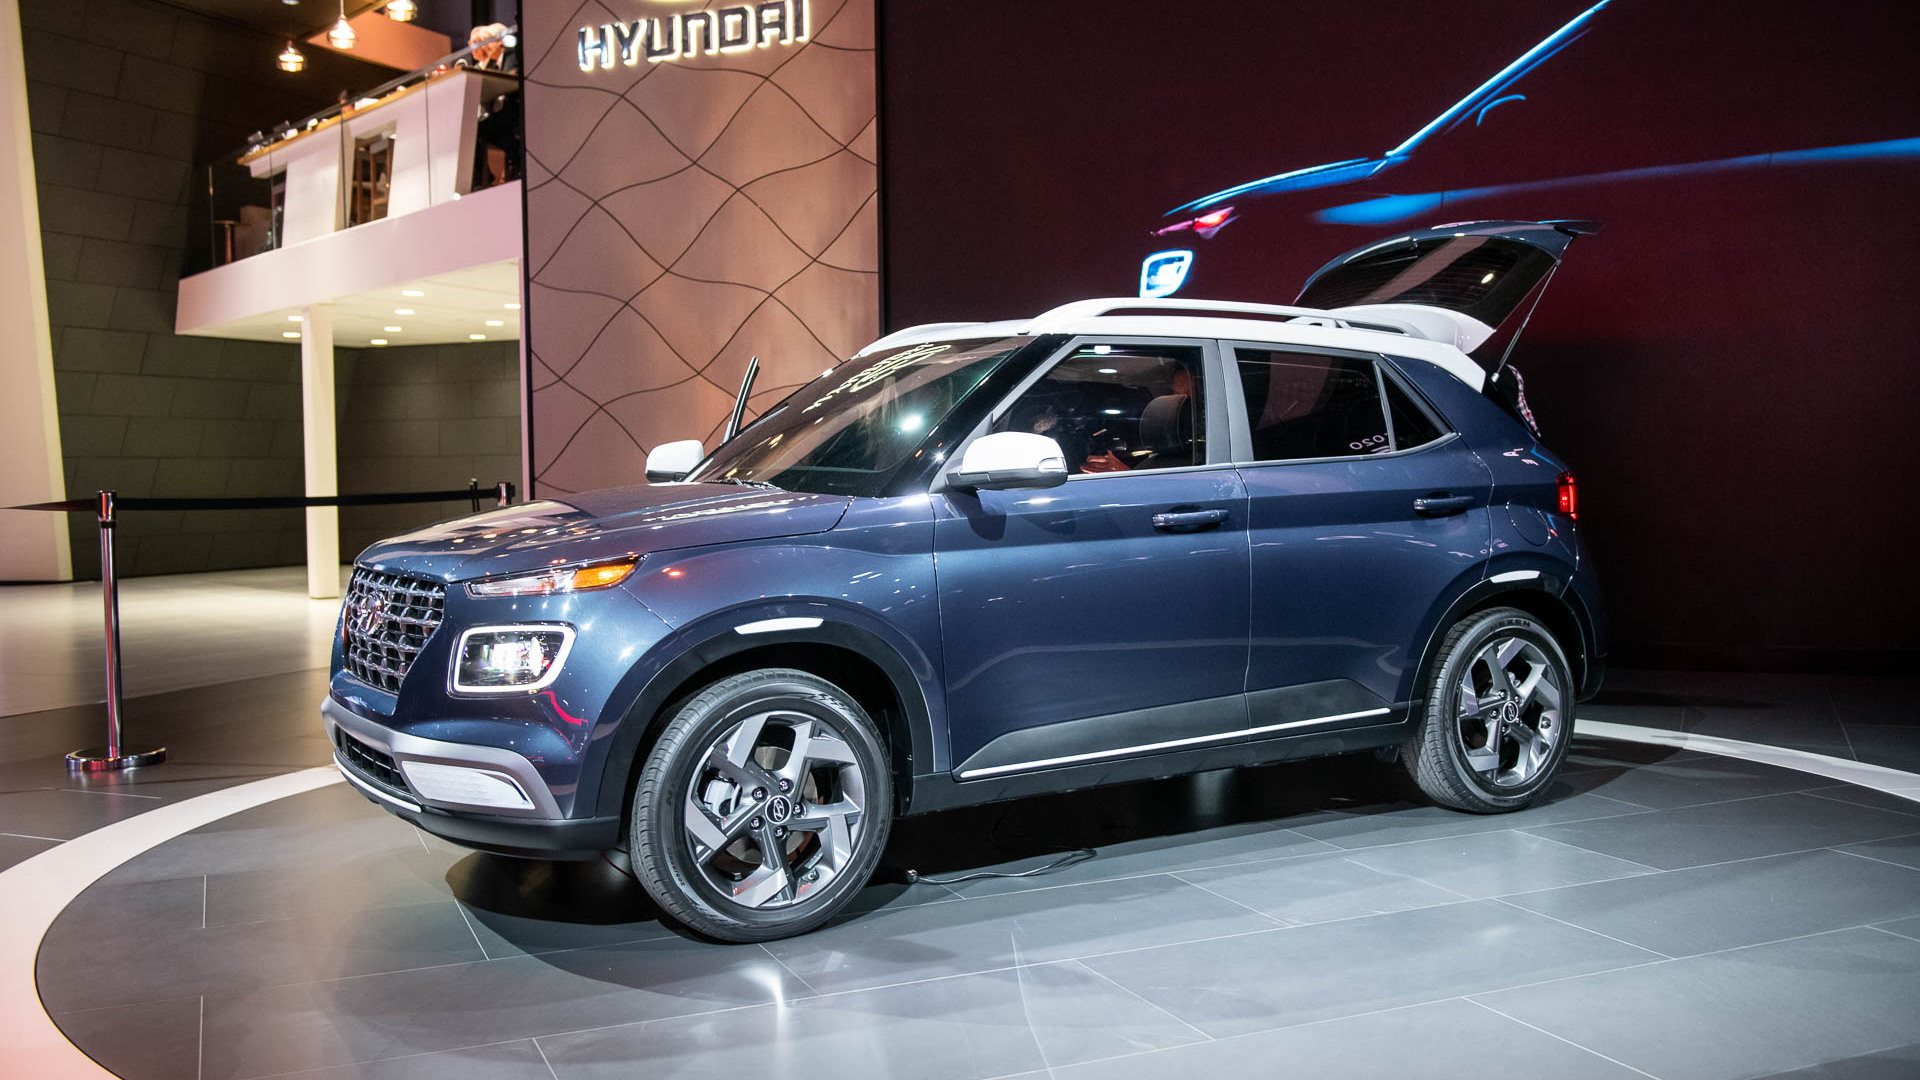 2020 Hyundai Venue, 2019 New York International Auto Show